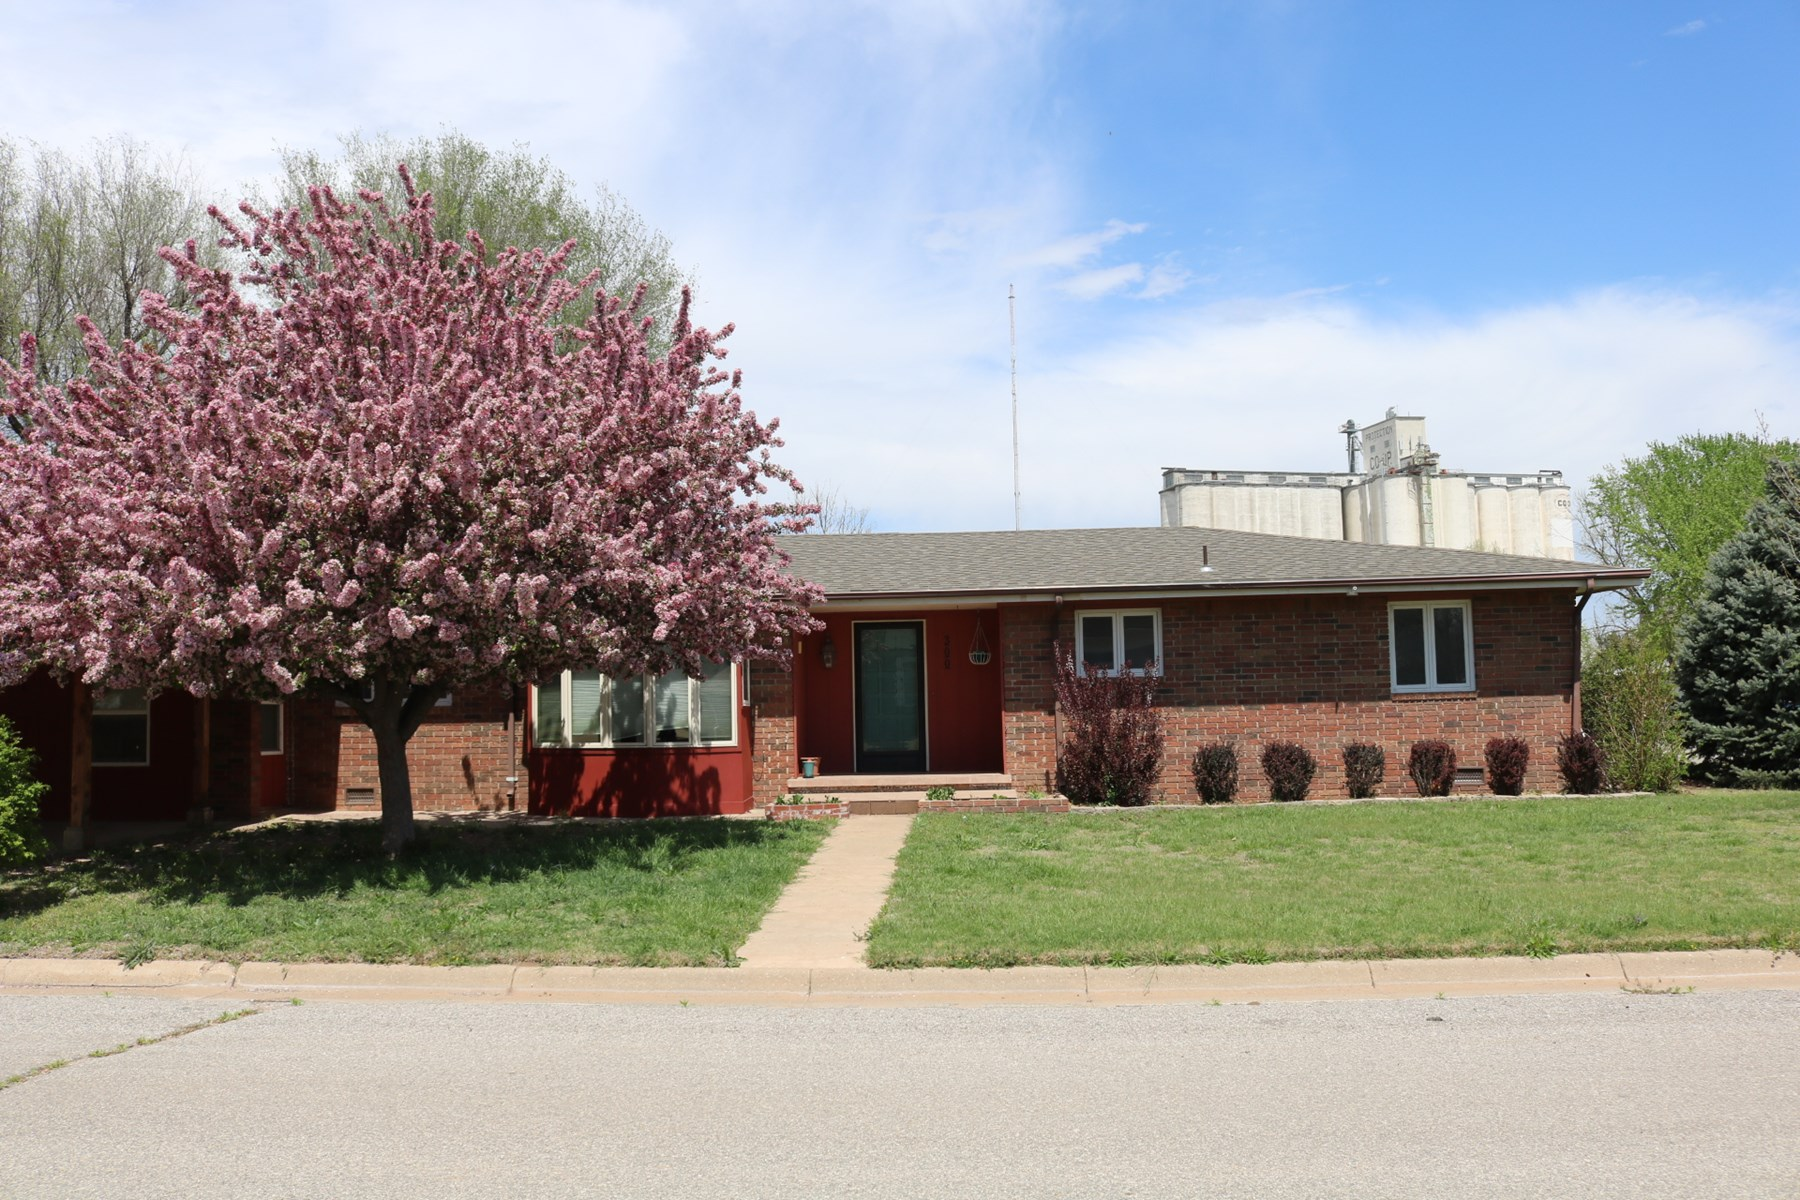 Brick Ranch Style Home For Sale In Protection, Kansas